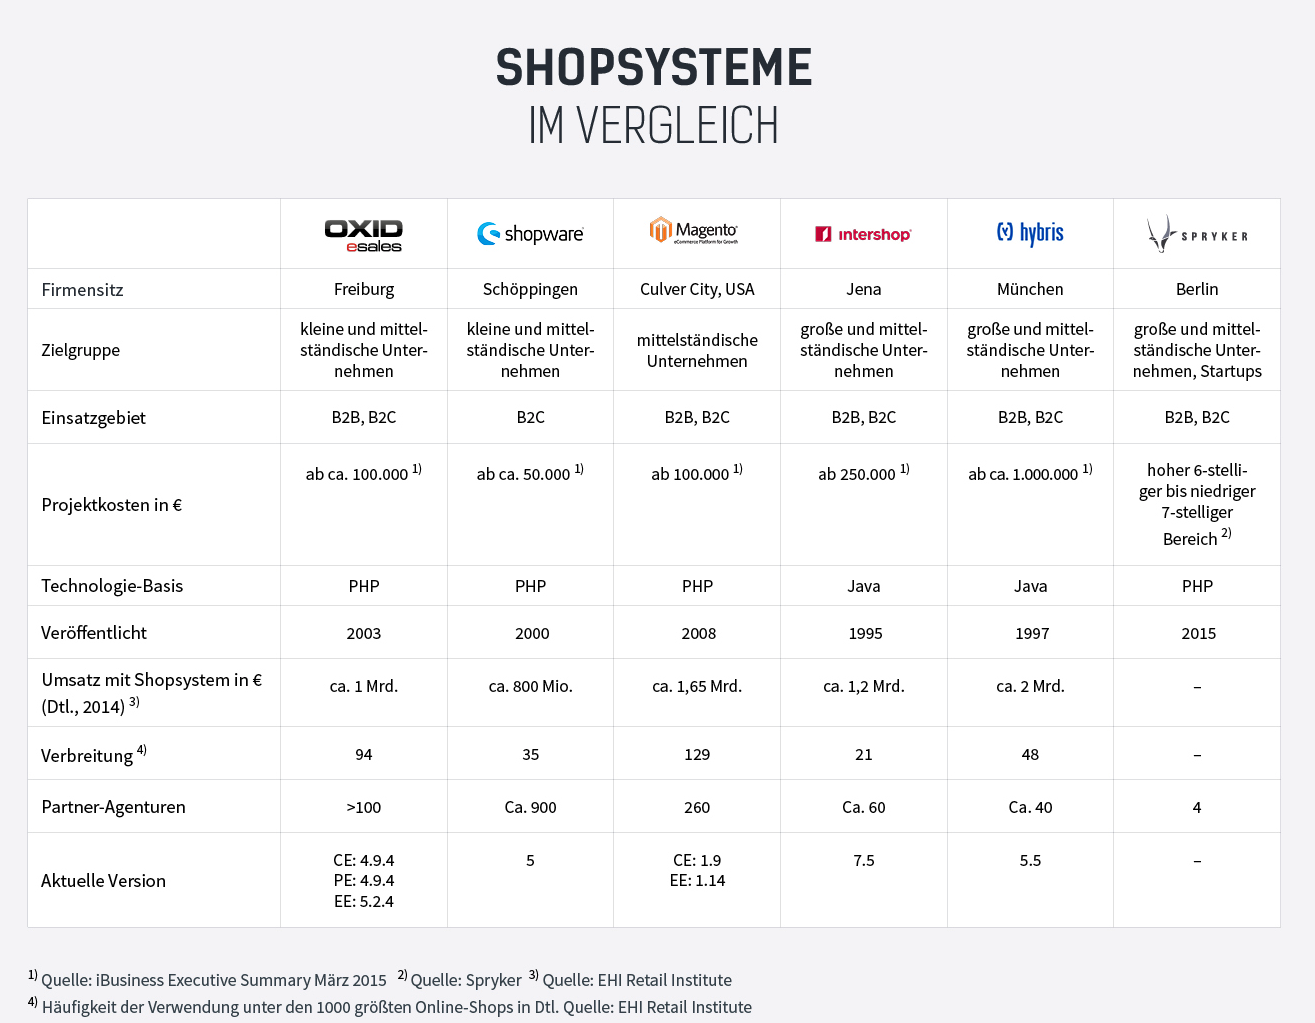 Quelle: https://votum.de/fokus-e-commerce/fokus-e-commerceshopsysteme-vergleich/